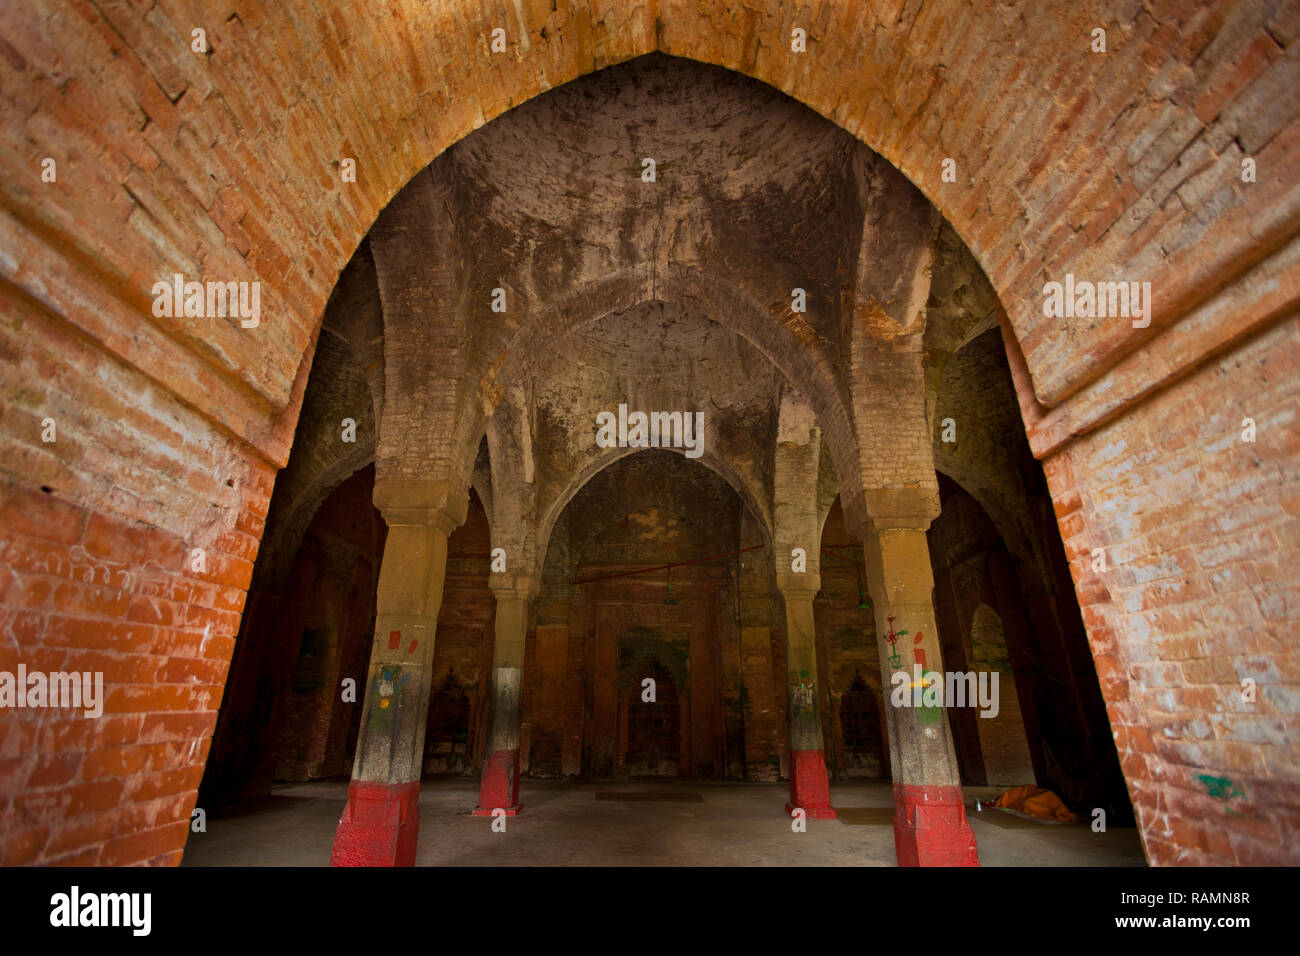 Inside view of the Nine Domed Mosque. Bagerhat, Bangladesh. - Stock Image